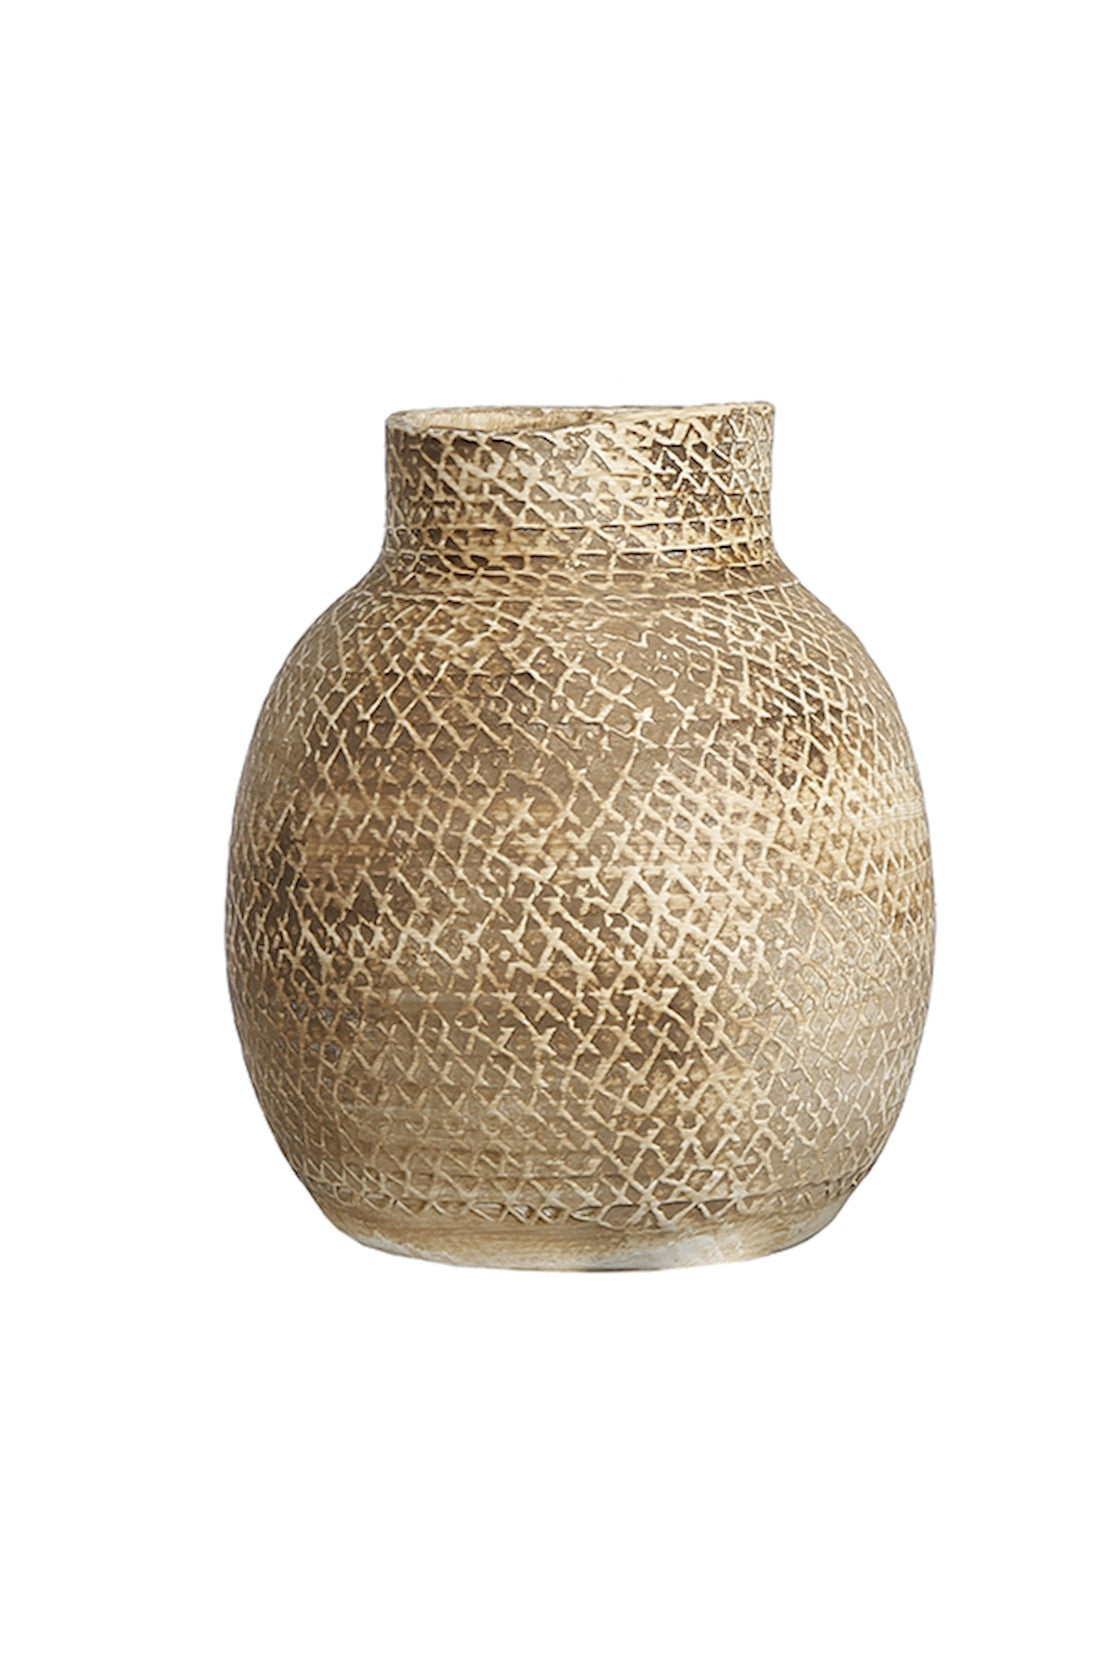 VASE 'HONEY' NECK - Vases - SCAPA HOME - SCAPA HOME OFFICIAL